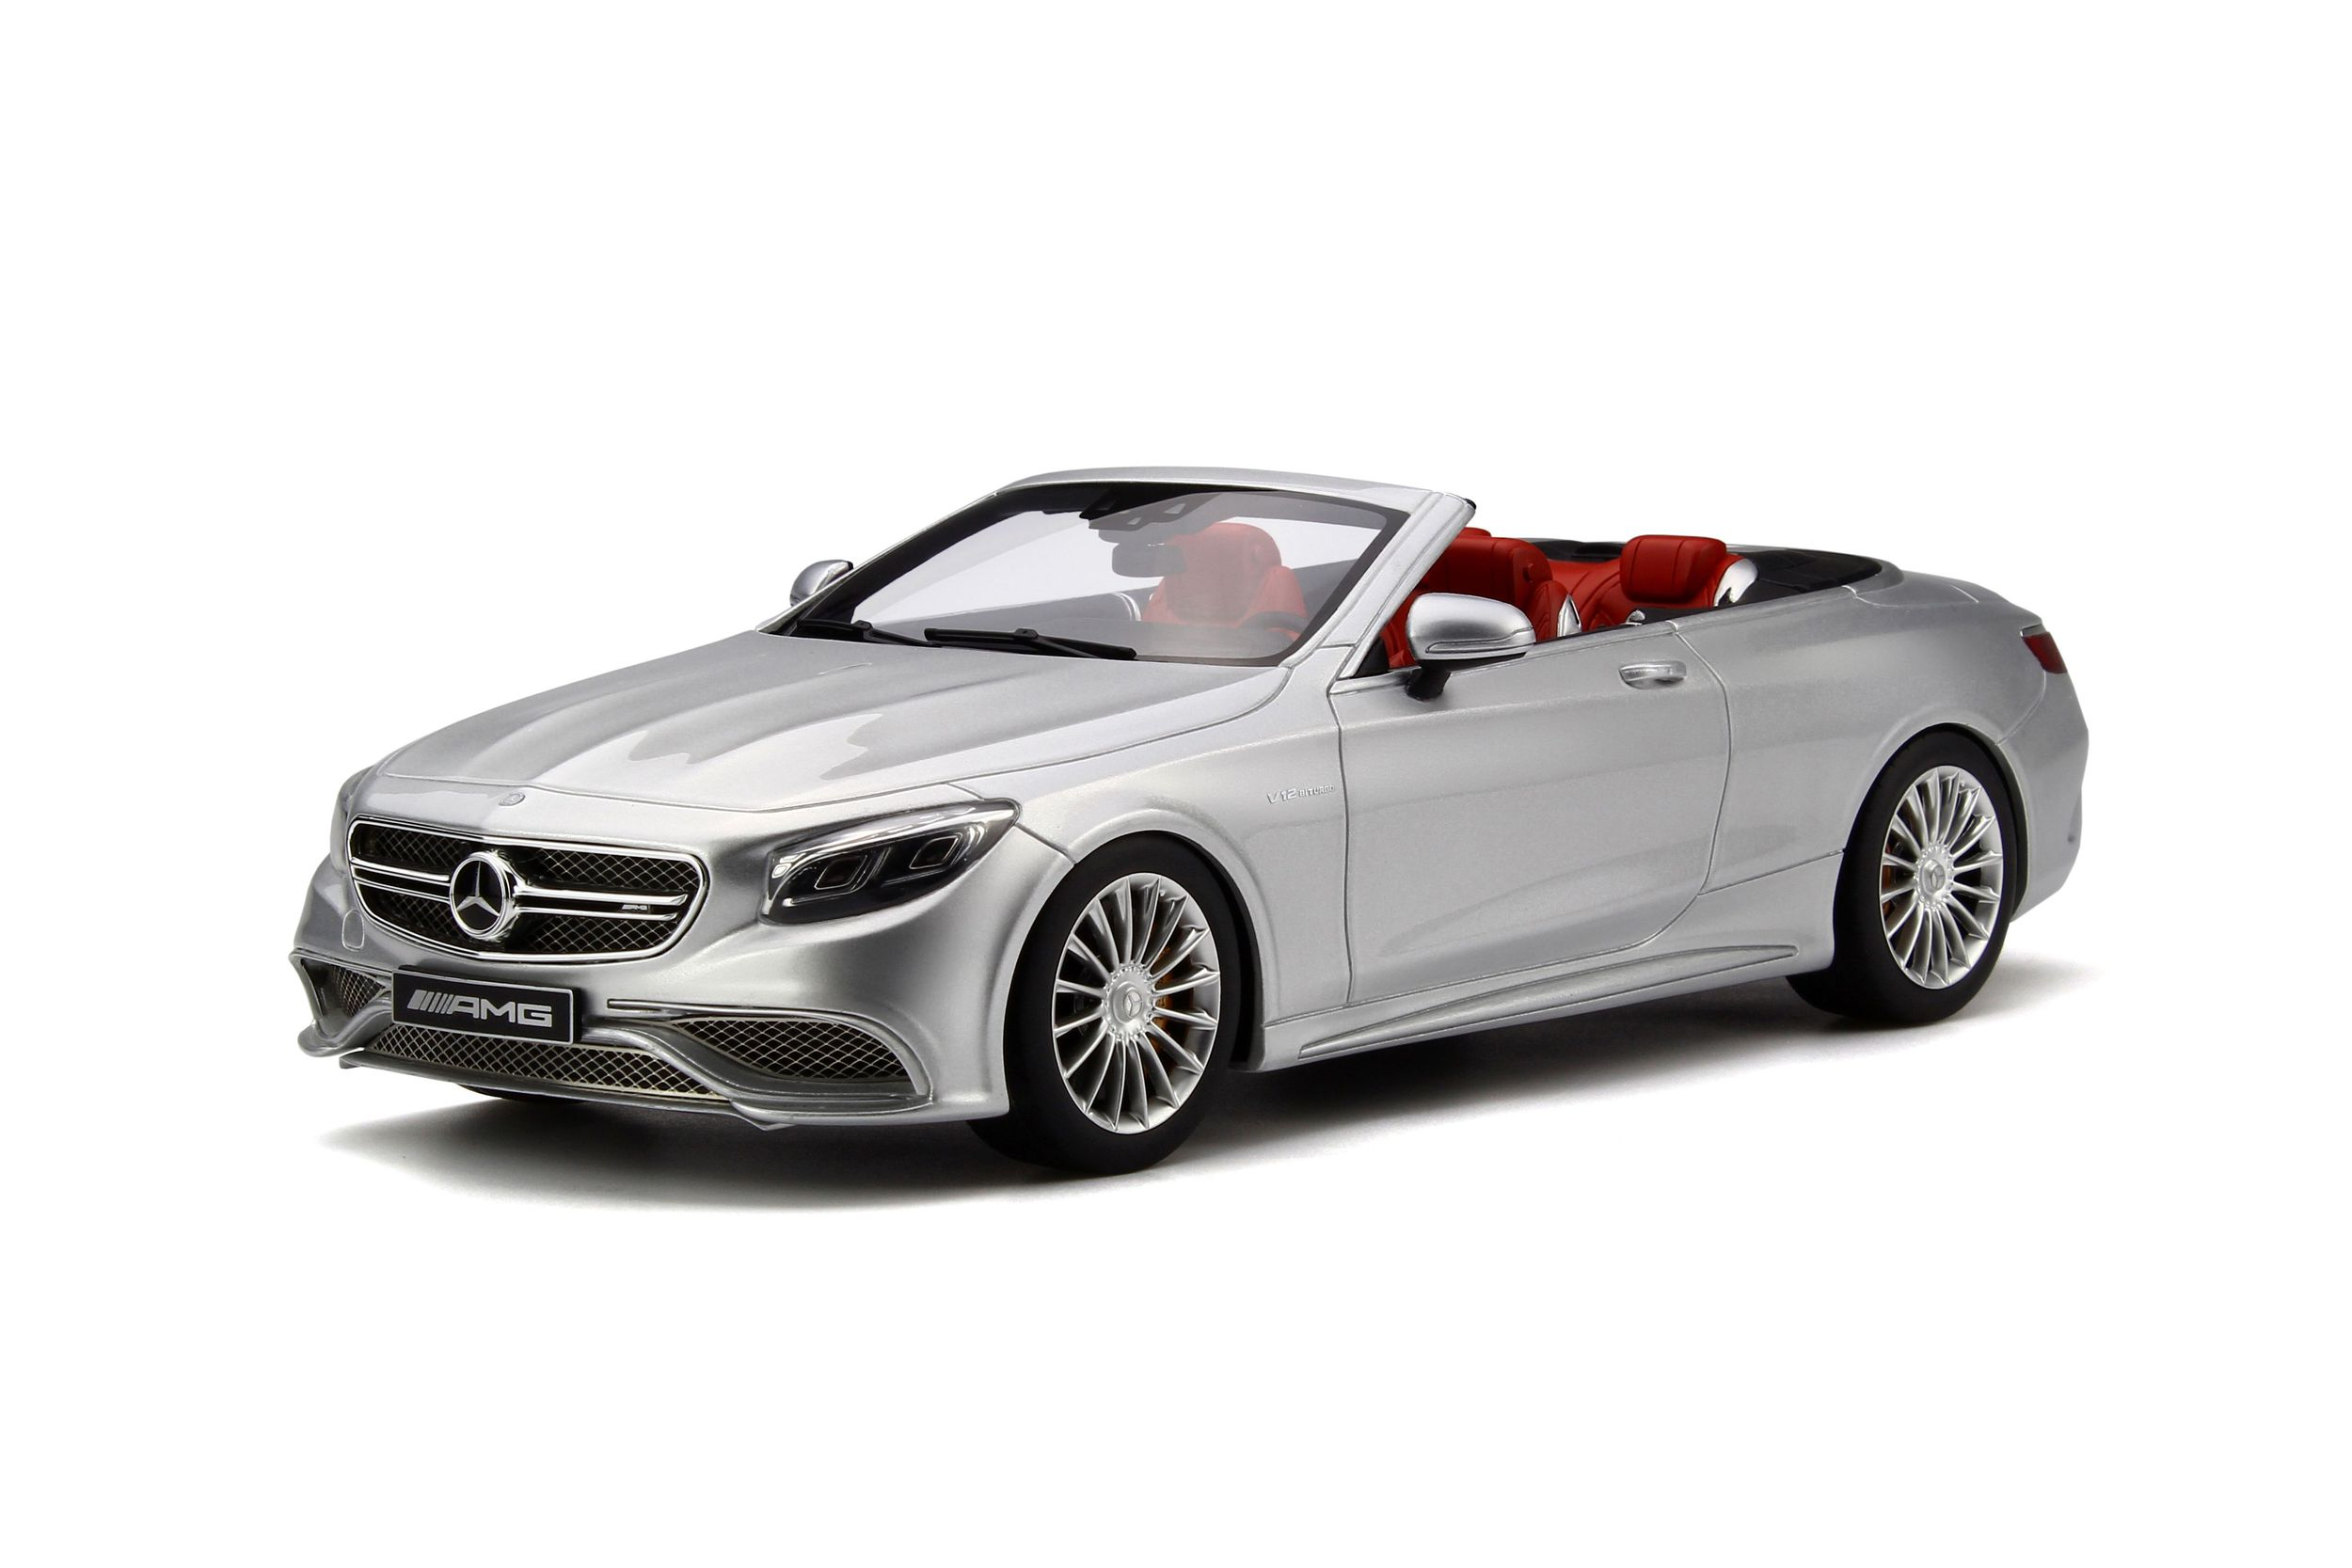 Mercedes Amg S 65 Convertible